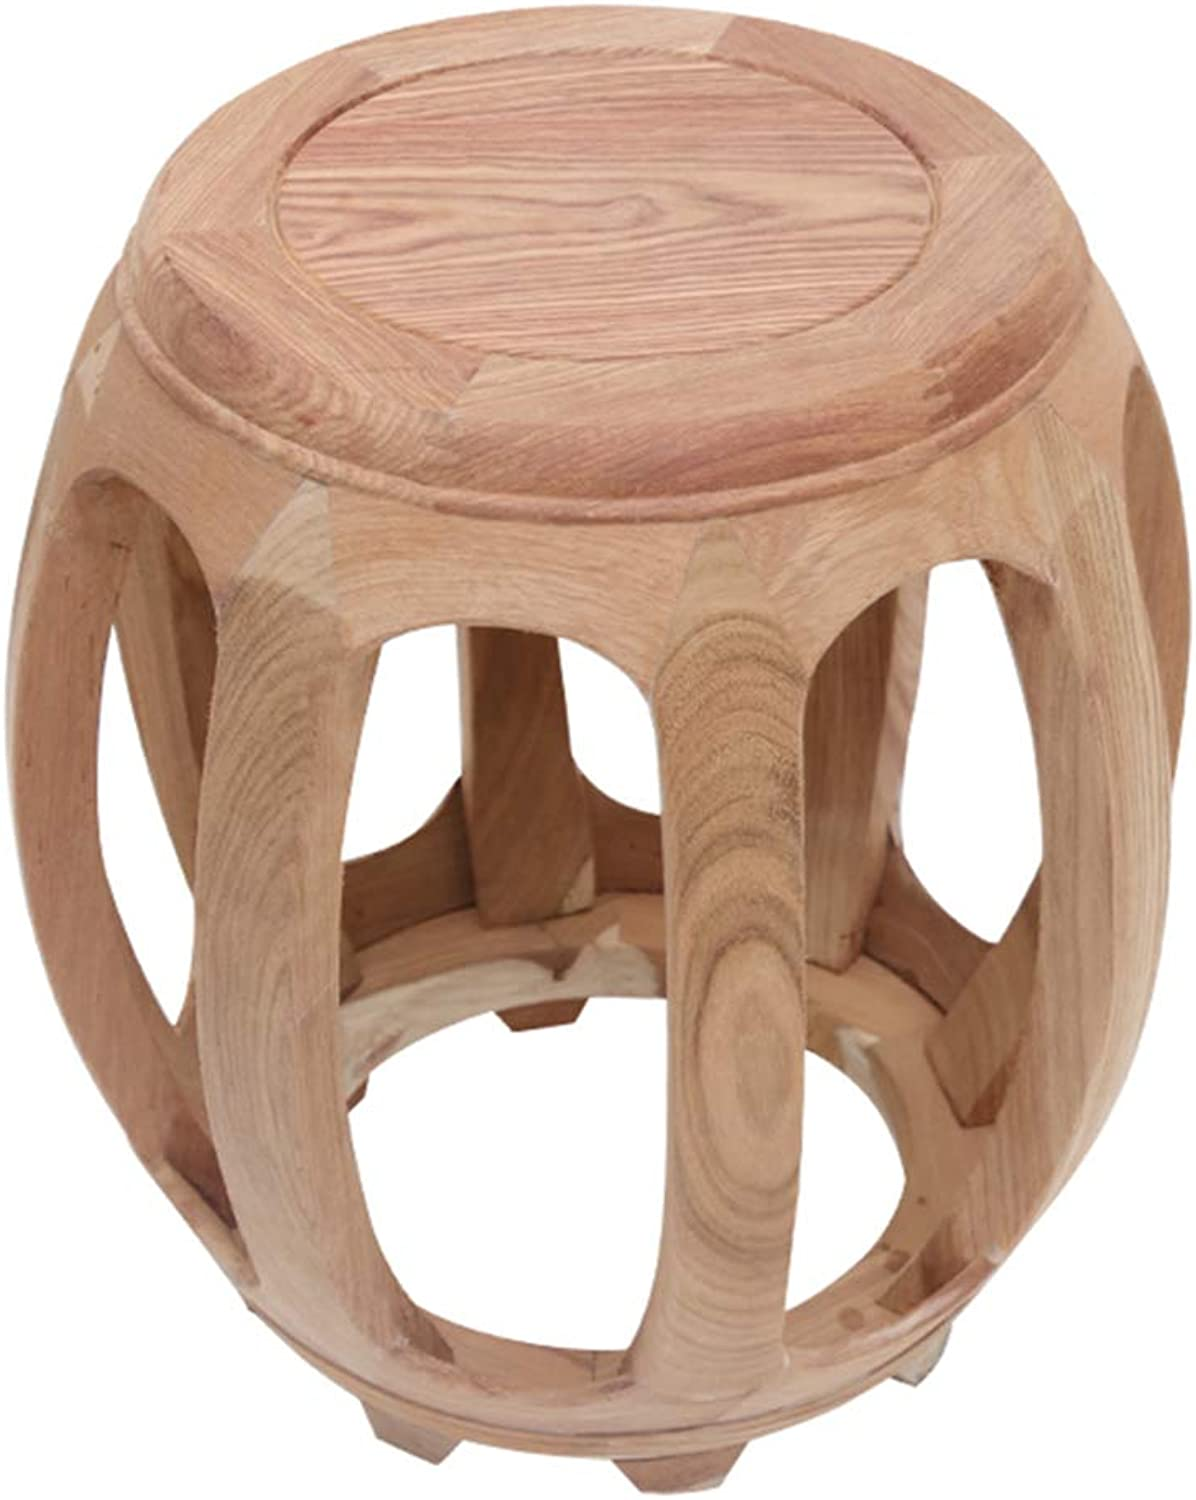 Stool Simple and Elegant Carved Table Stool pinkwood Small Stool Home Sofa Stool Wood color WEIYV (color   Wood-color, Size   41.5  44cm)